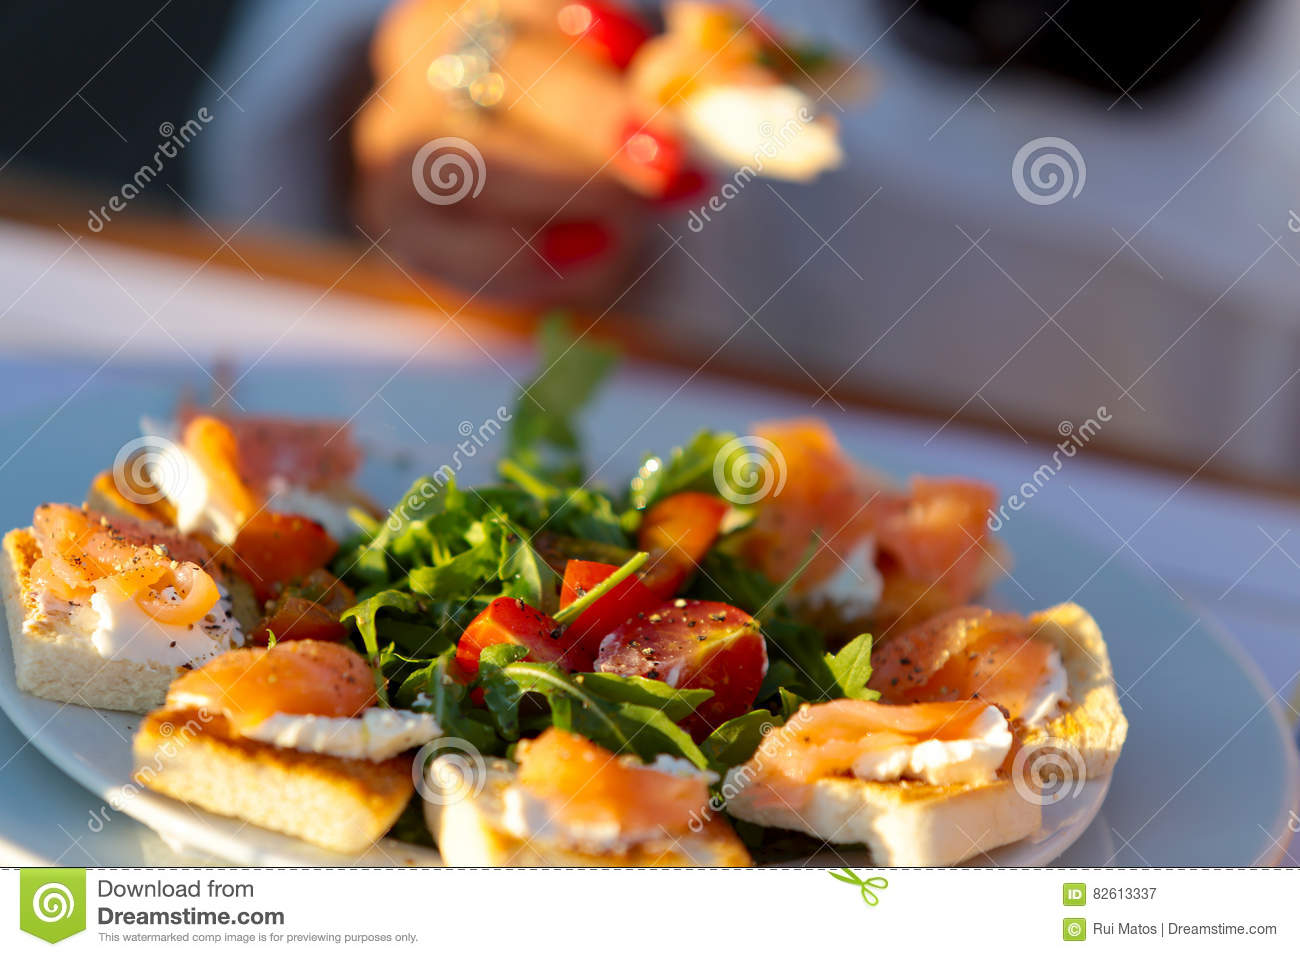 Canapes on plate stock image image of bites plate for What is a canape plate